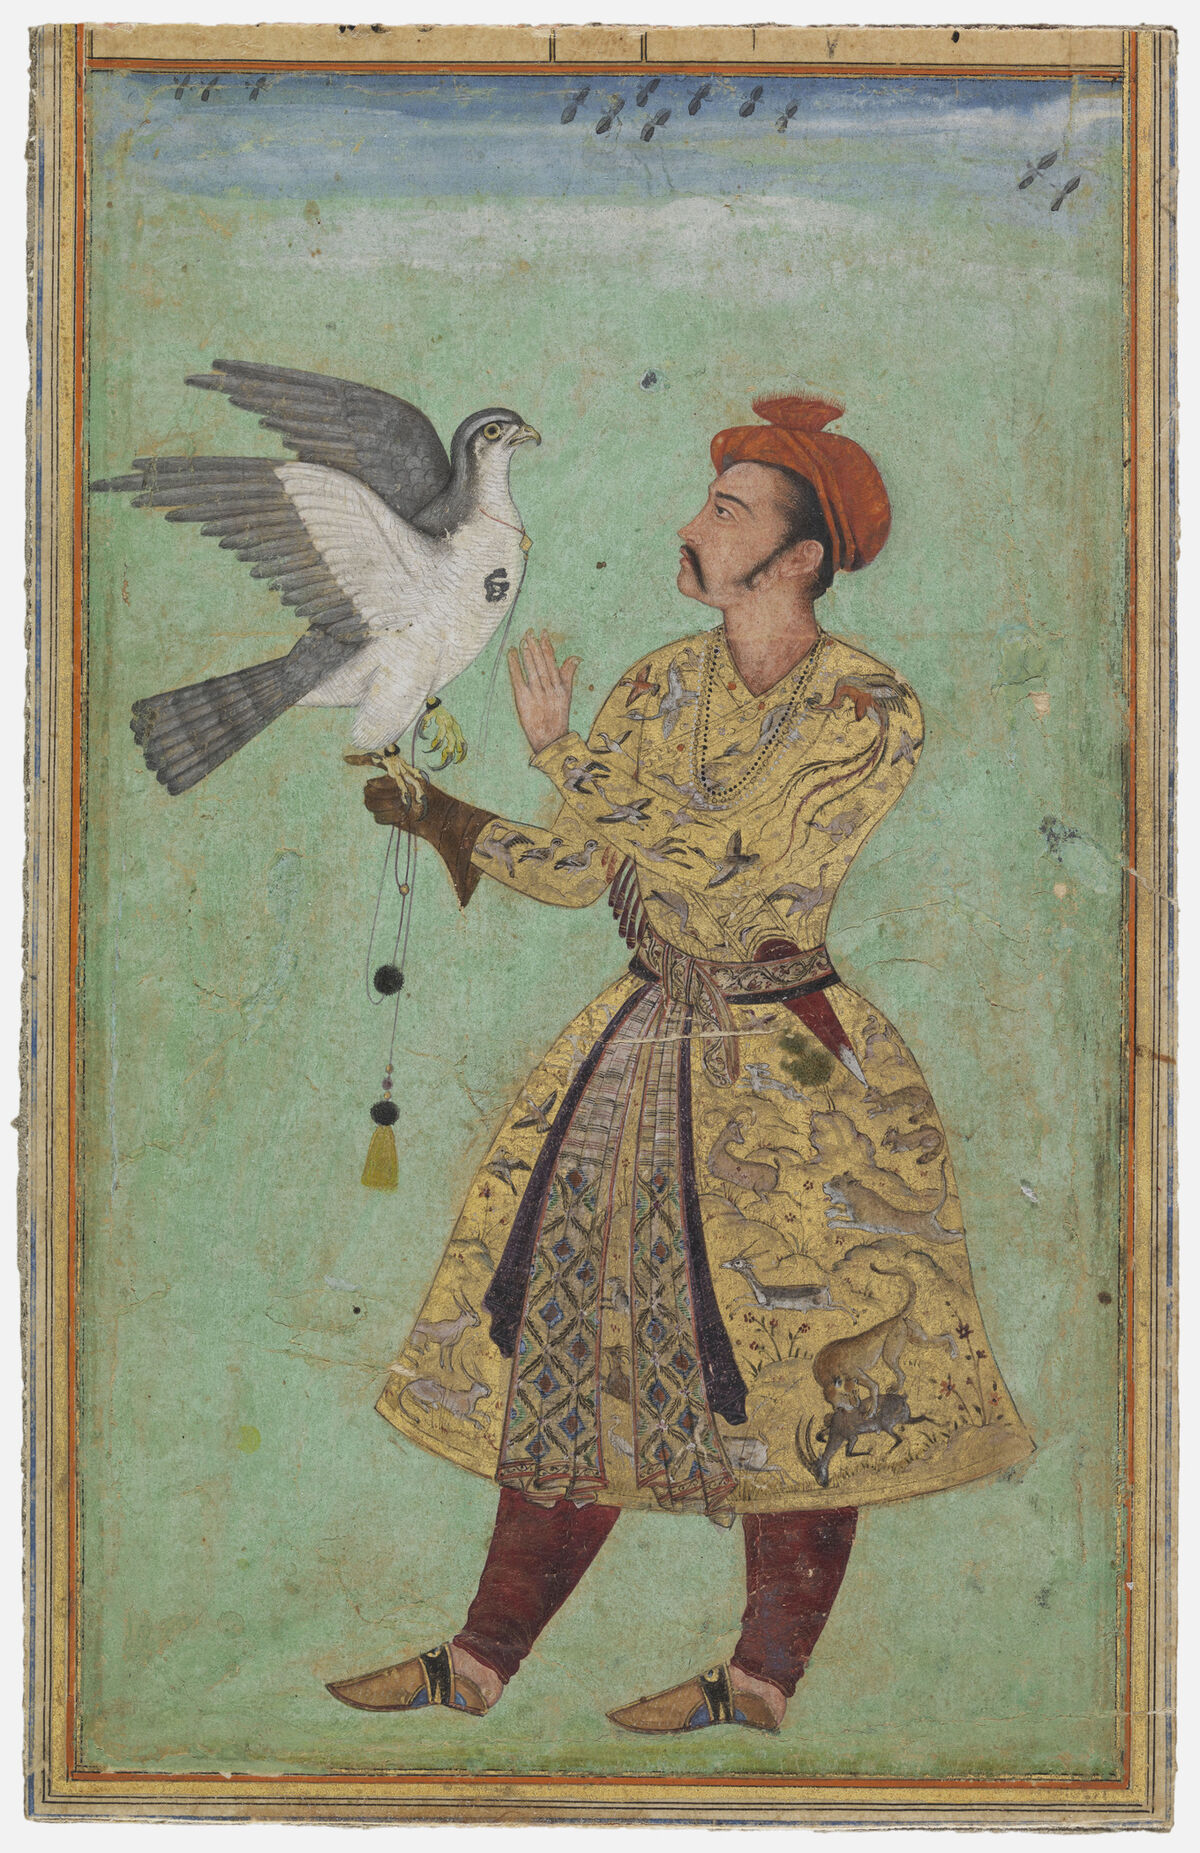 929ebbc70 Unknown artist, Prince With a Falcon, 1600-1605. Courtesy of the Los